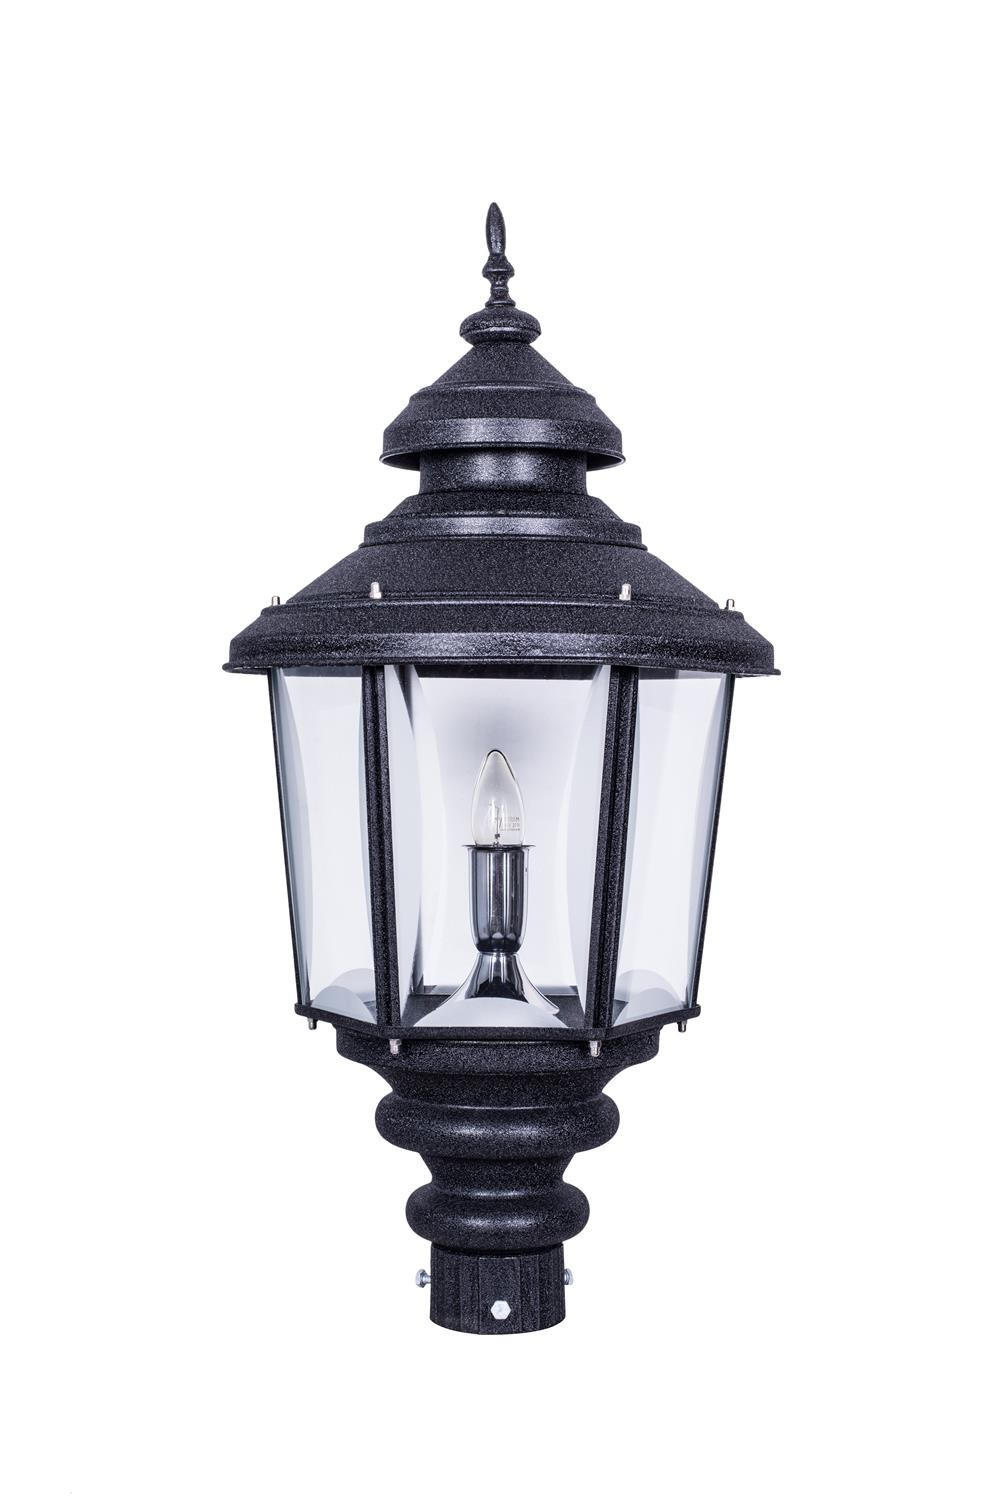 Crinkle Black Large Exterior Gate Light